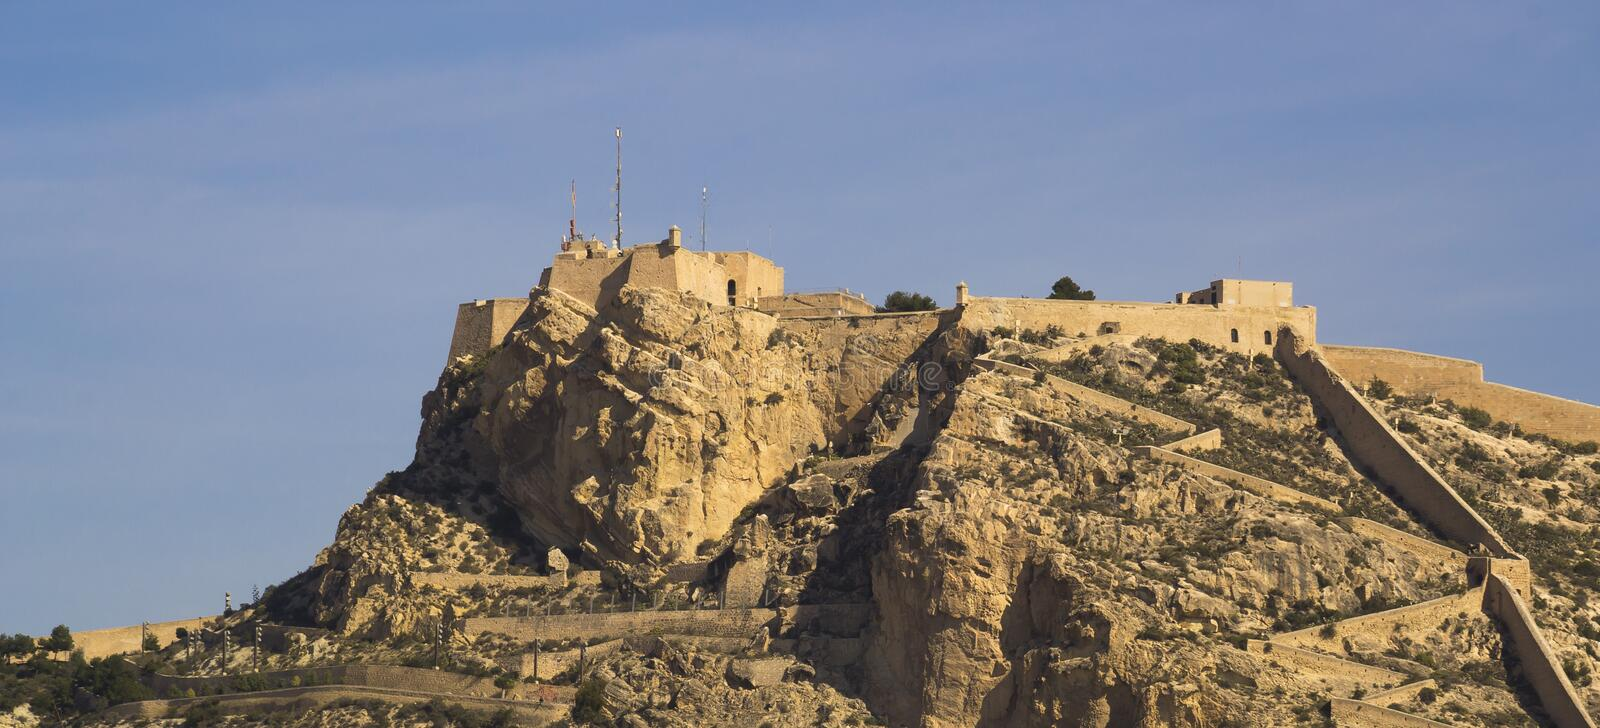 Download Santa Barbara Castle Alicante Stock Photo - Image: 33647028